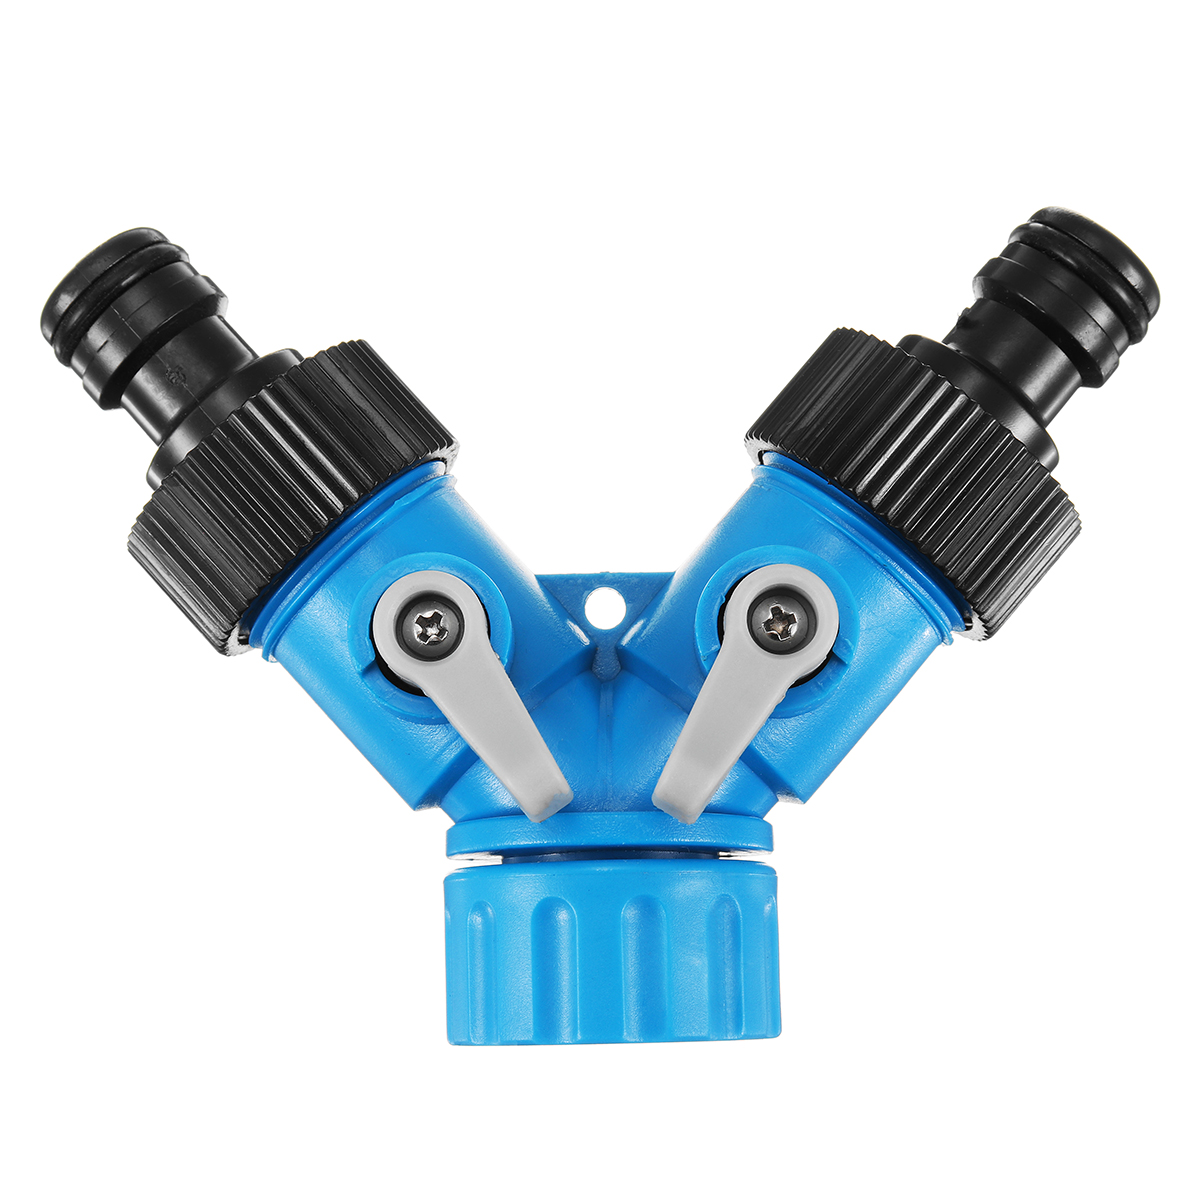 3/4 Inch Two Way Y Hose Pipe Garden Splitter Tap Connector Water Hose Pipe Connectors